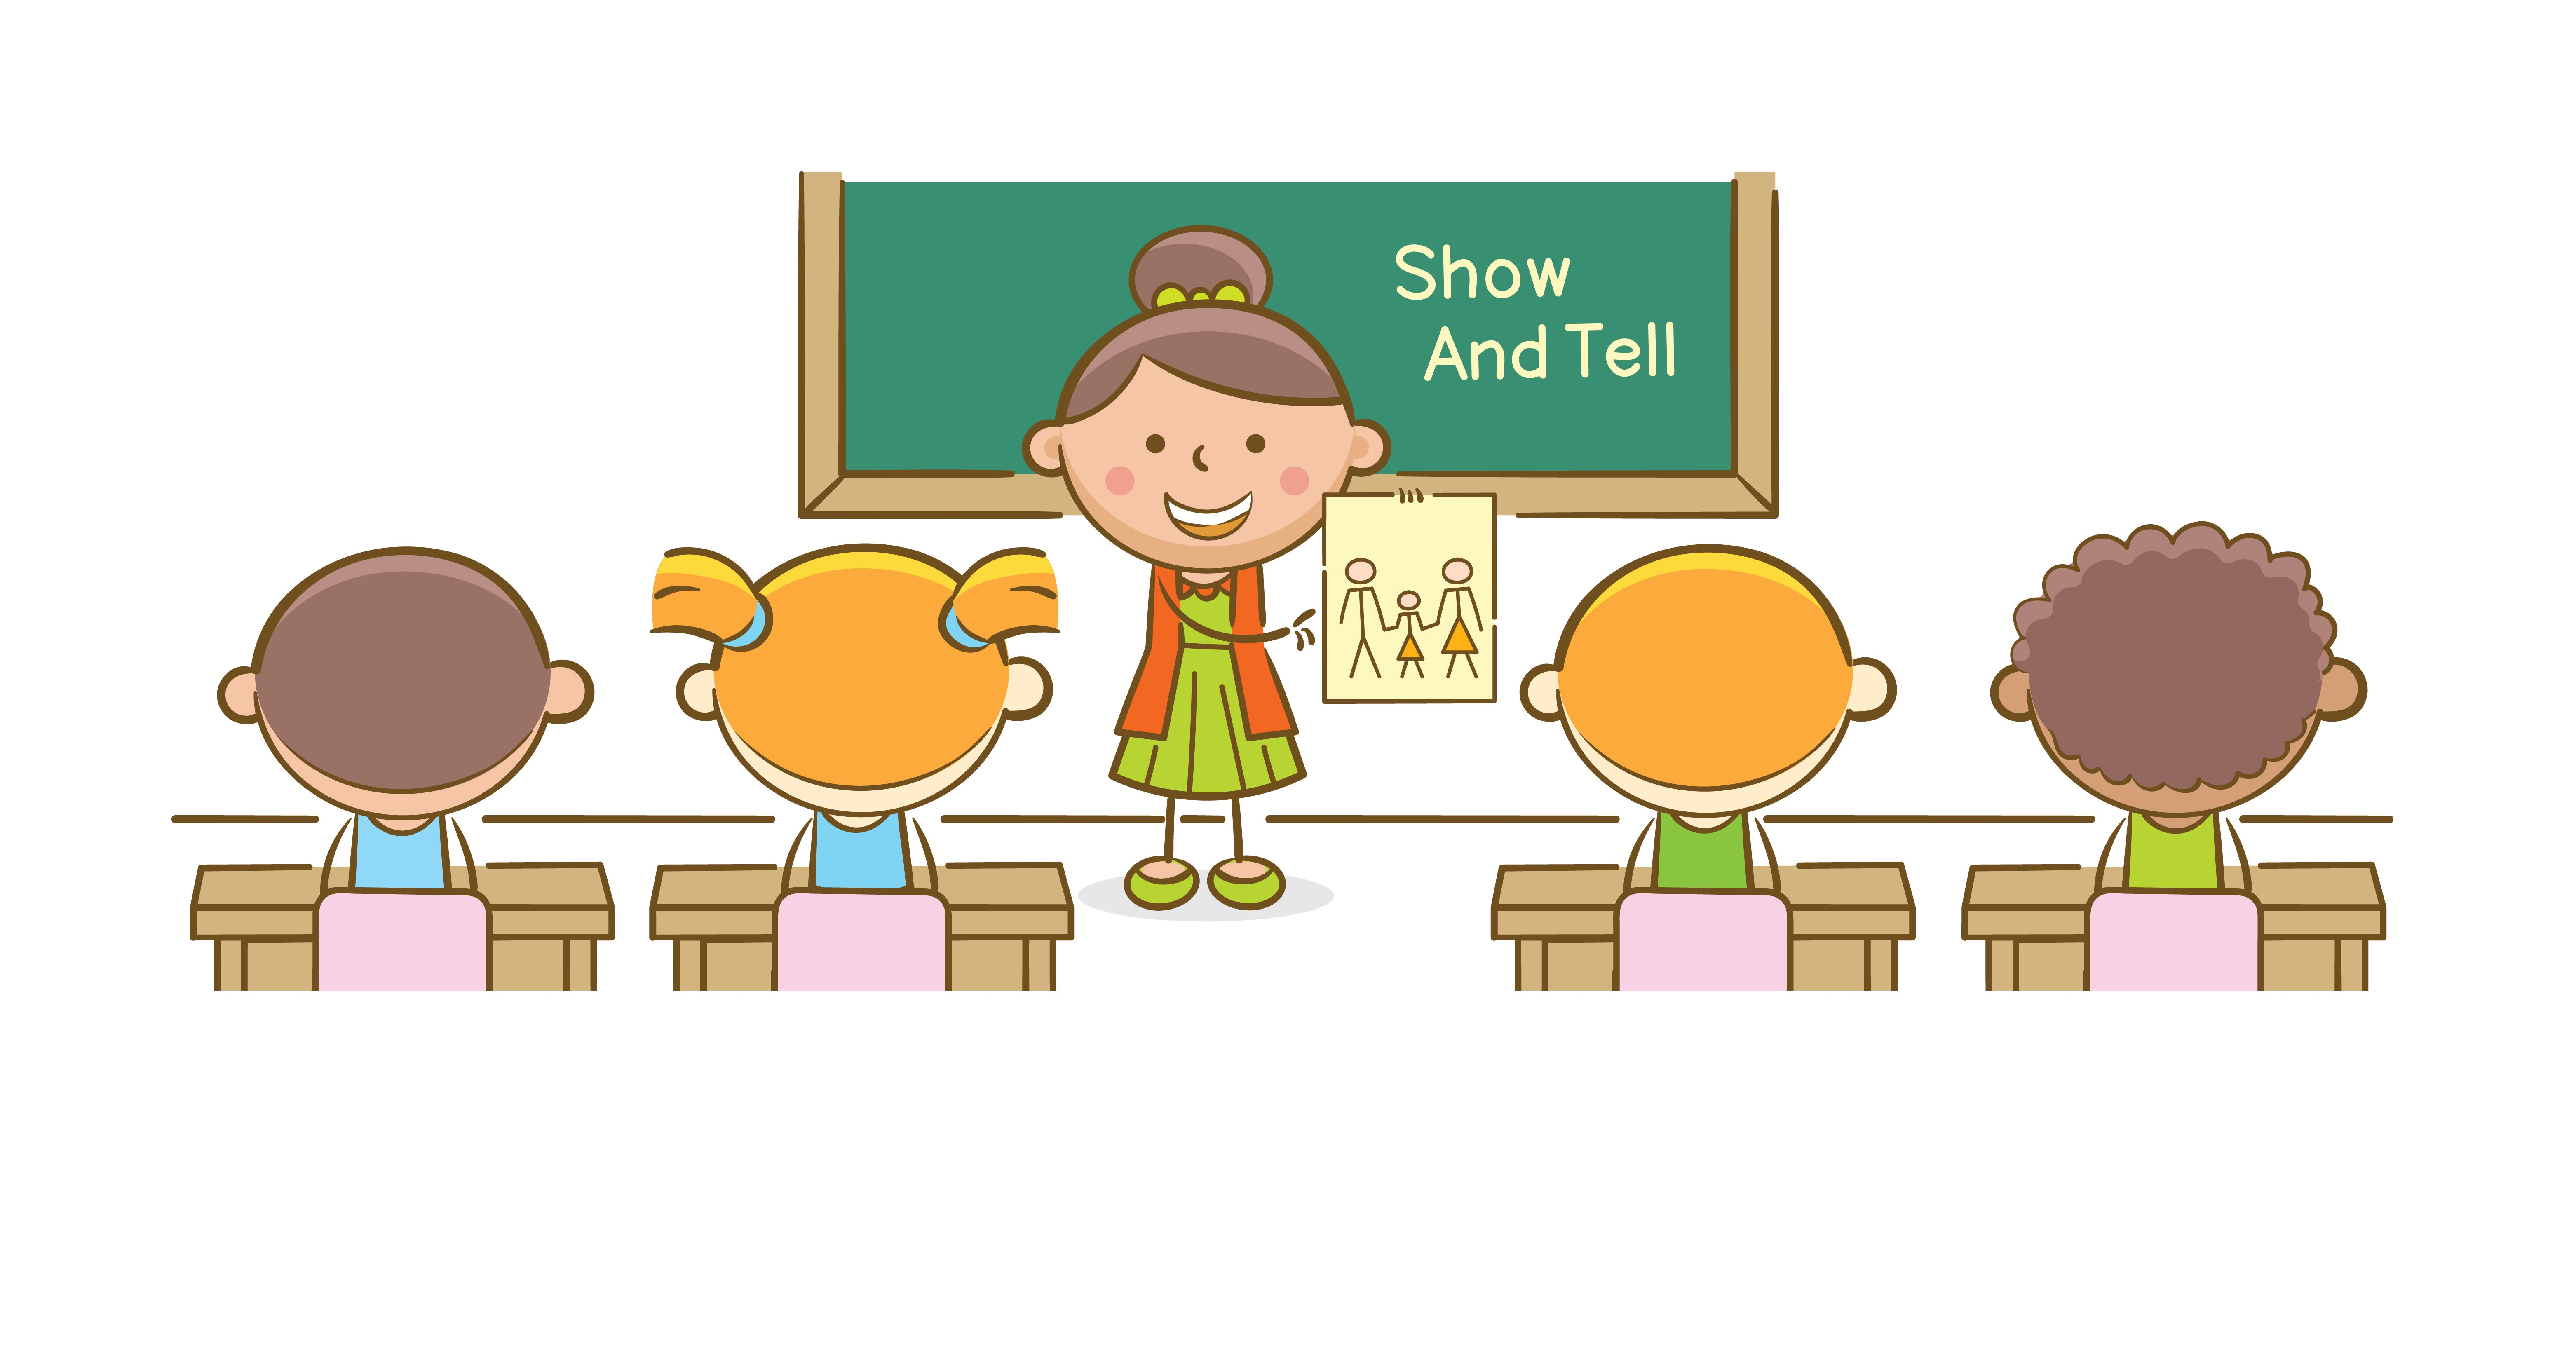 Show and tell classroom | Photo: Shutterstock